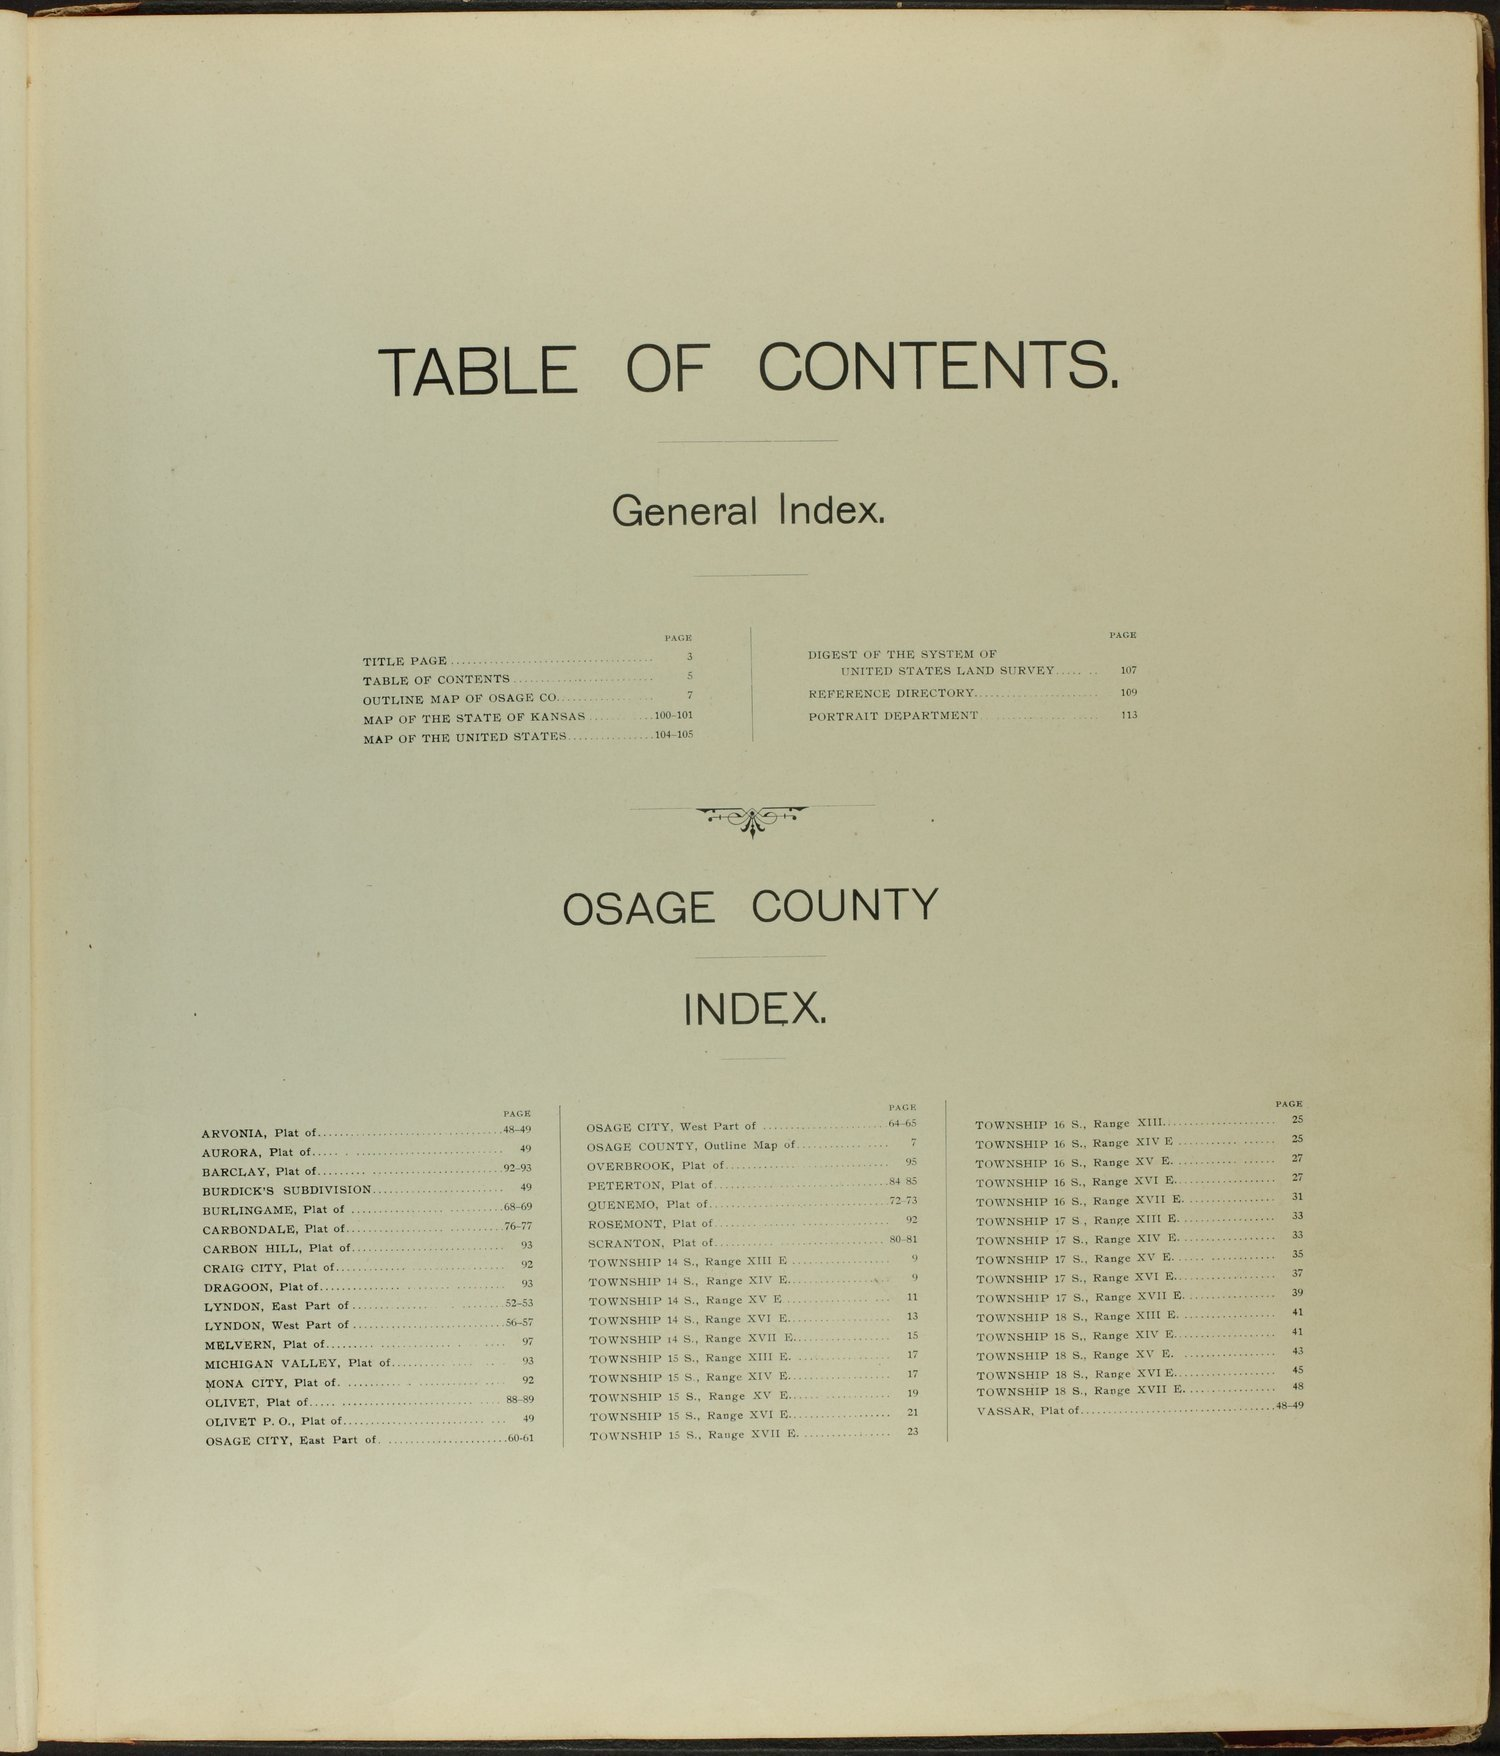 Descriptive atlas of Osage County, Kansas - Table of Contents